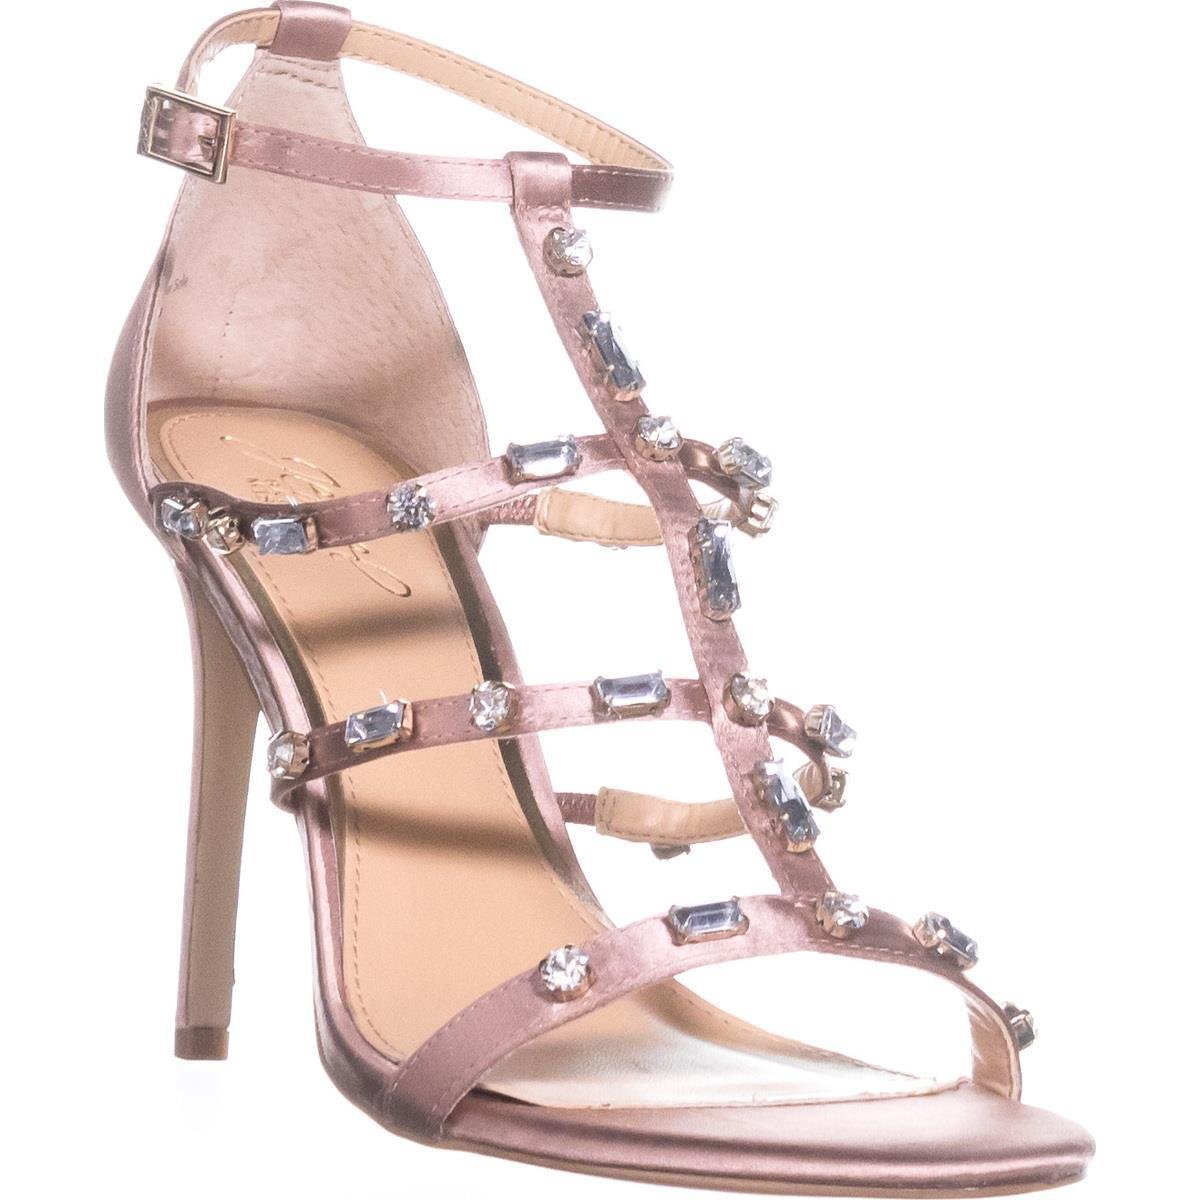 Jewel Badgley Mischka Womens Adela Sandal